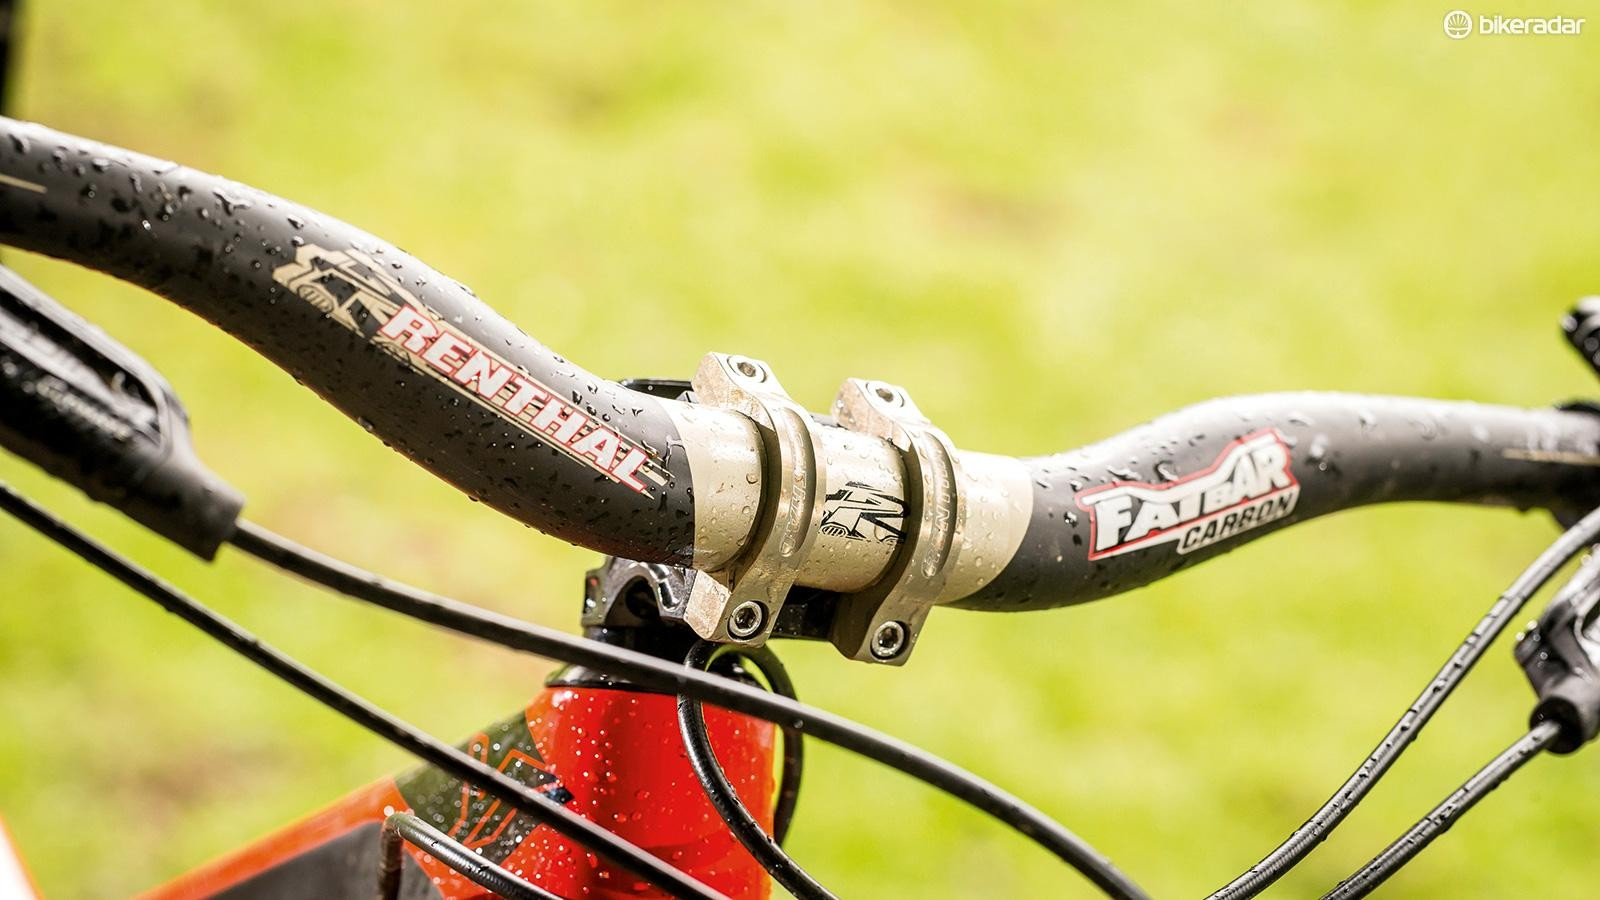 A short stem and riser bar keep things aggressive